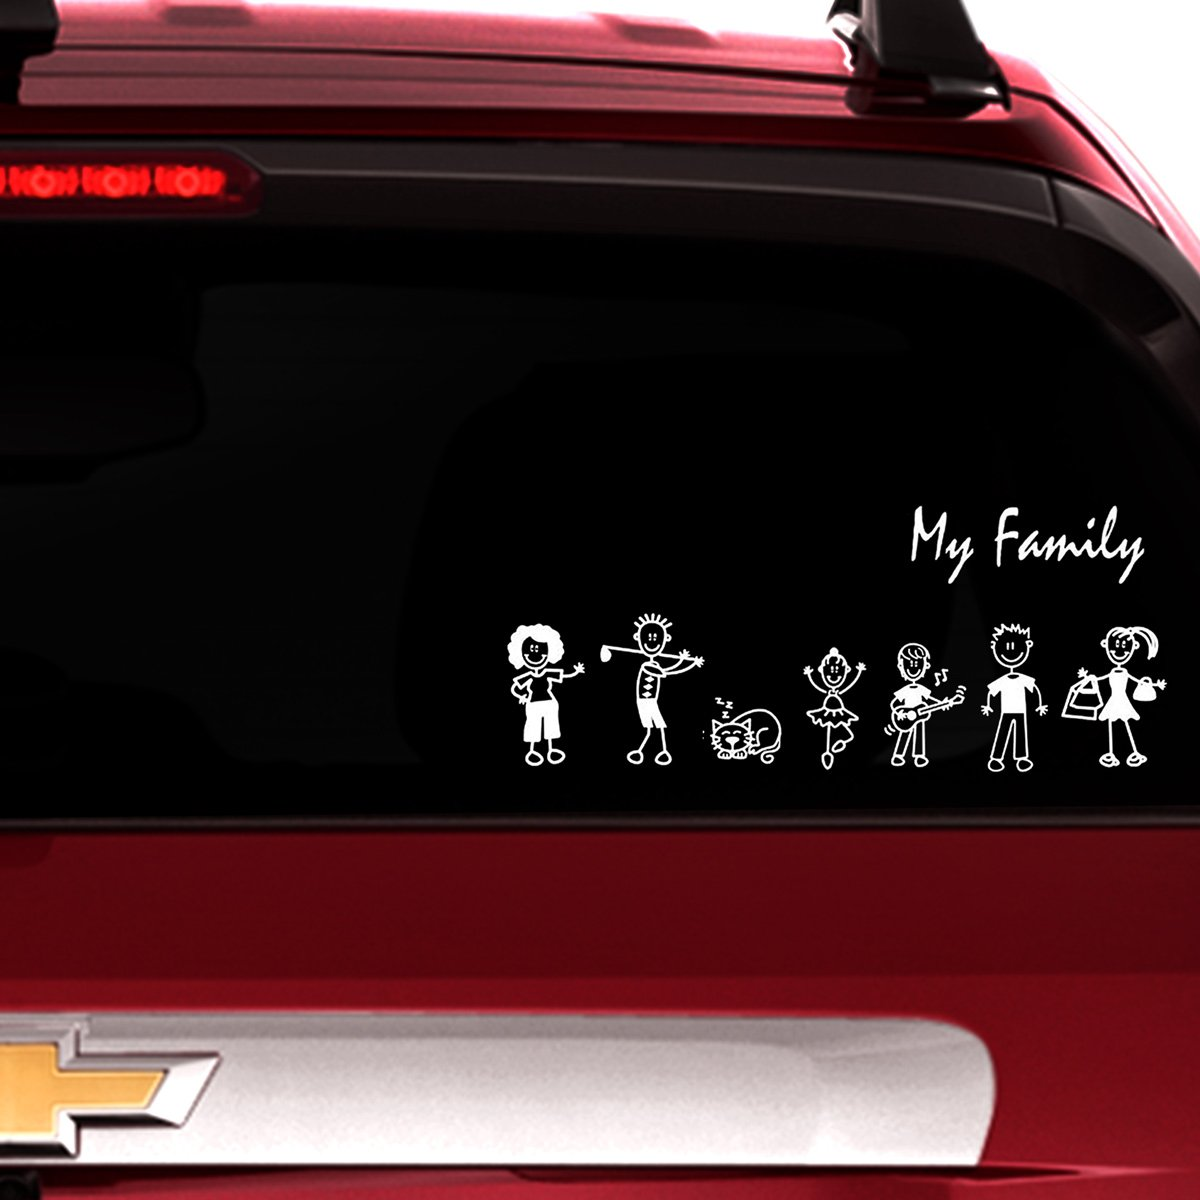 Amazon com totomo 13 stick figure my family car stickers style1 with pet dog cat family car decal sticker for windows bumper automotive